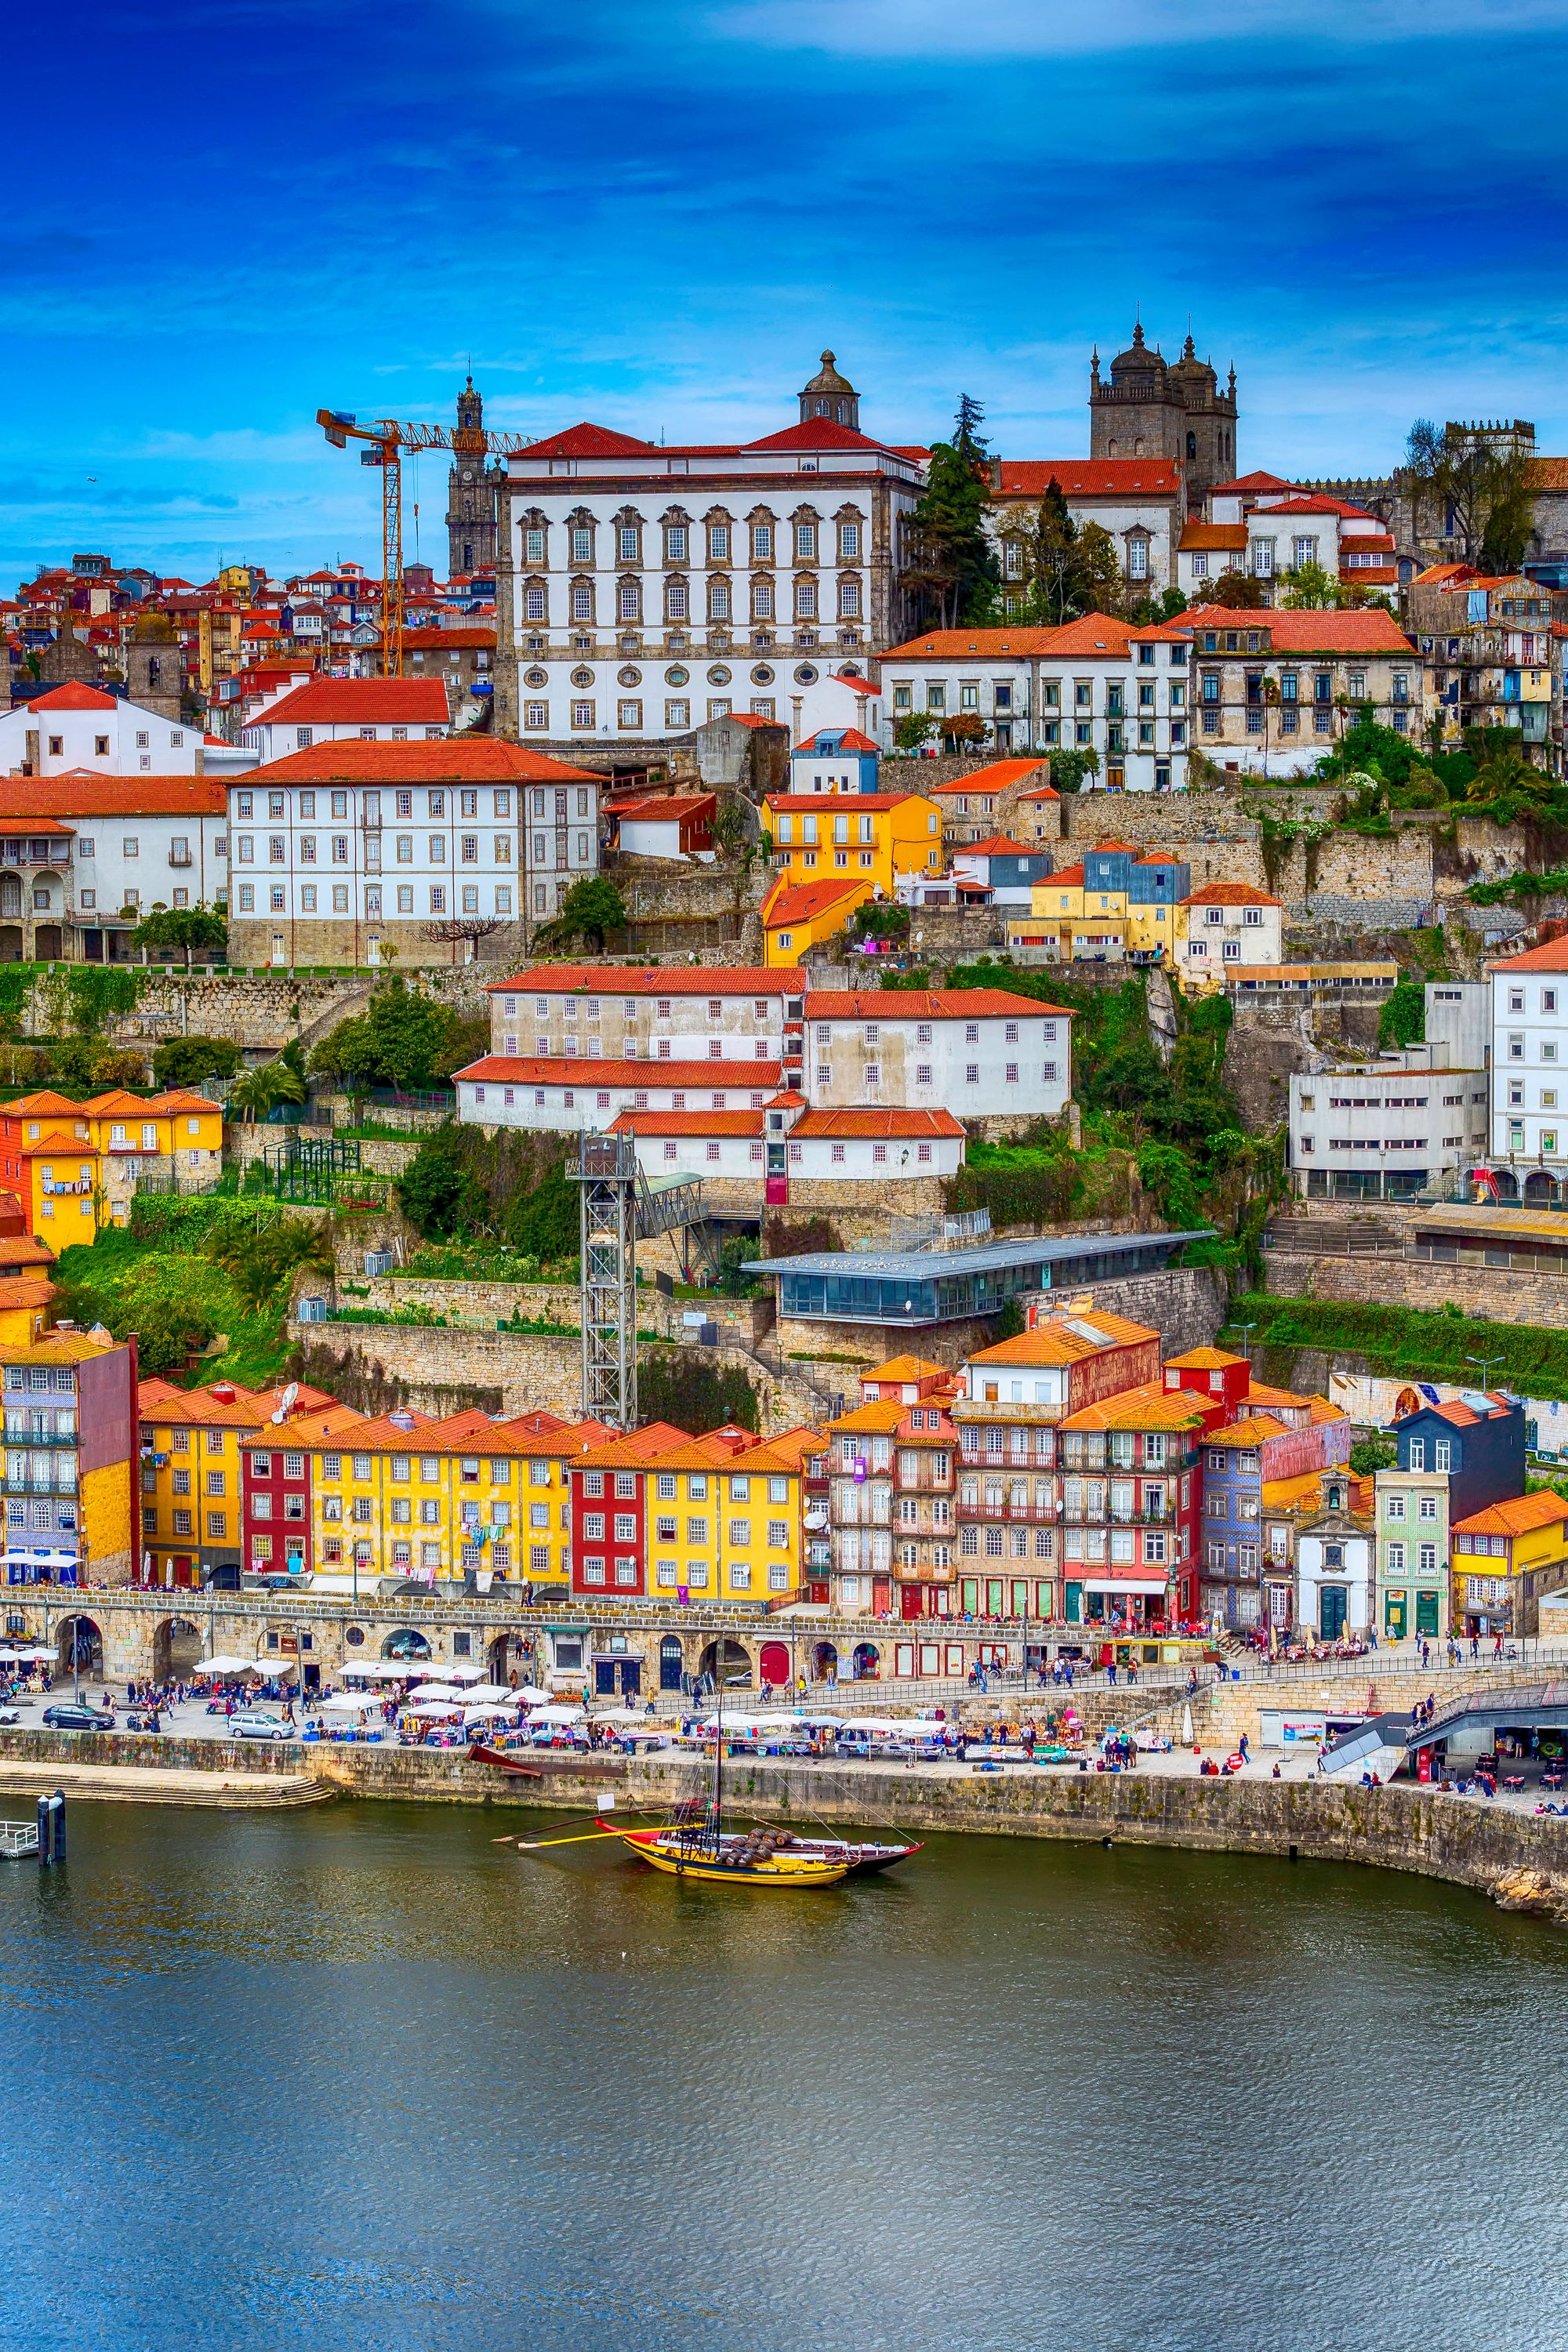 Ribeira is one of the most popular neighbourhoods in Porto